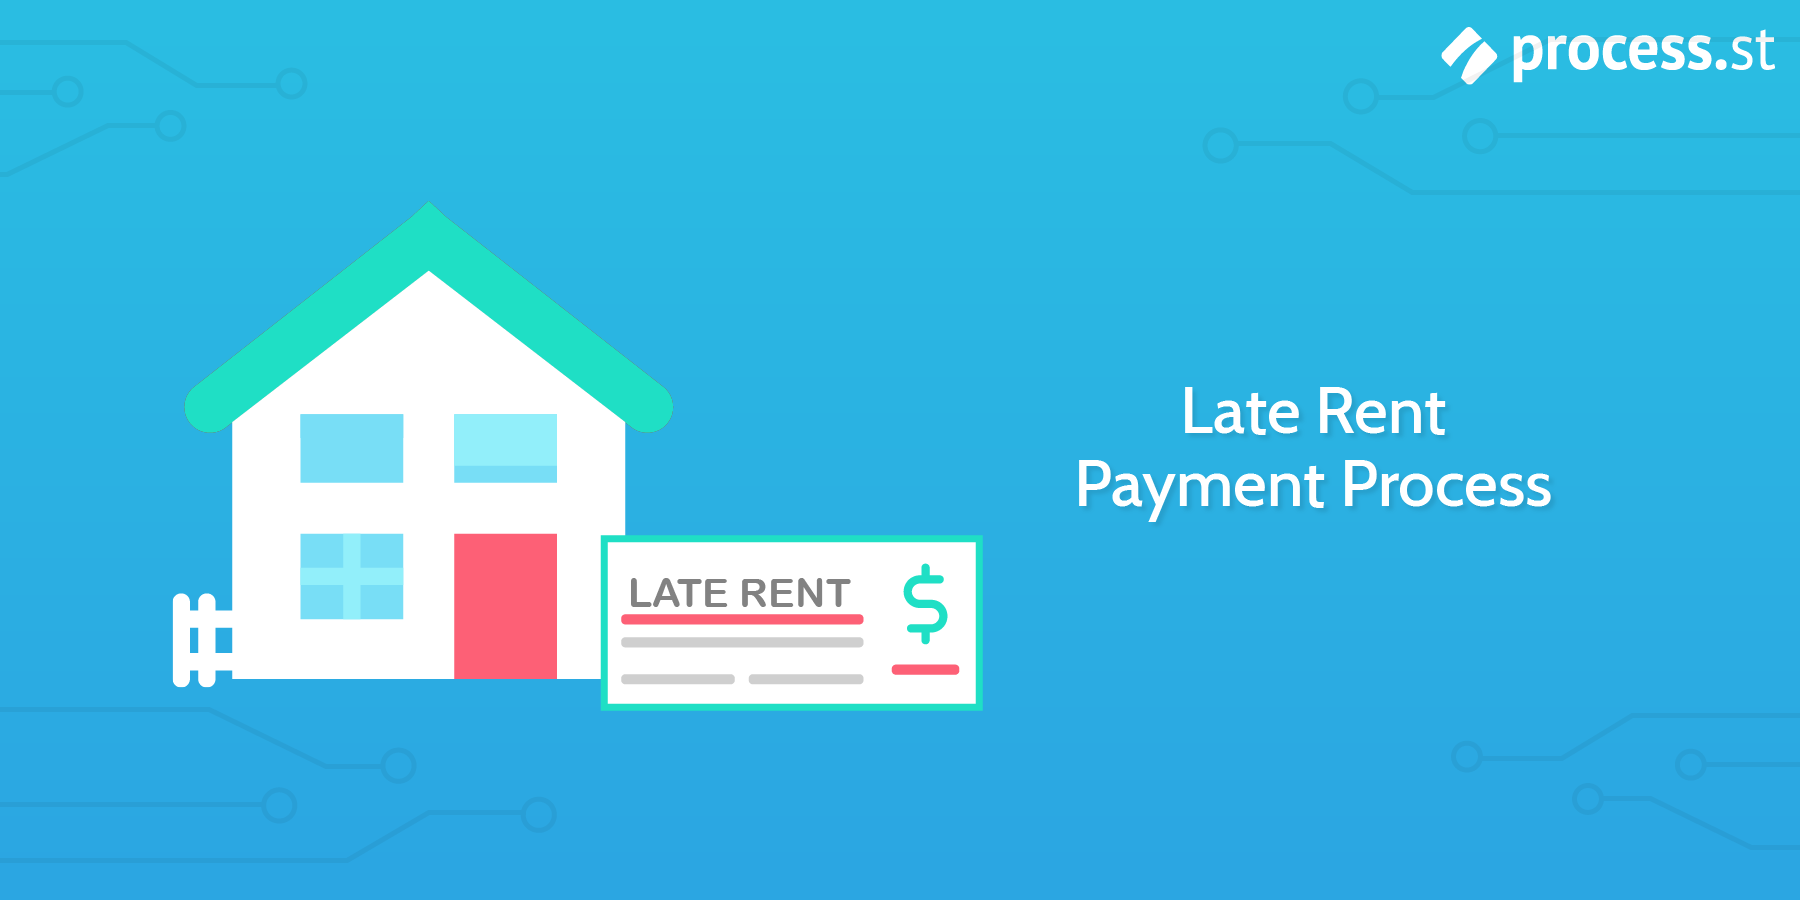 propertyware-late-rent-payment